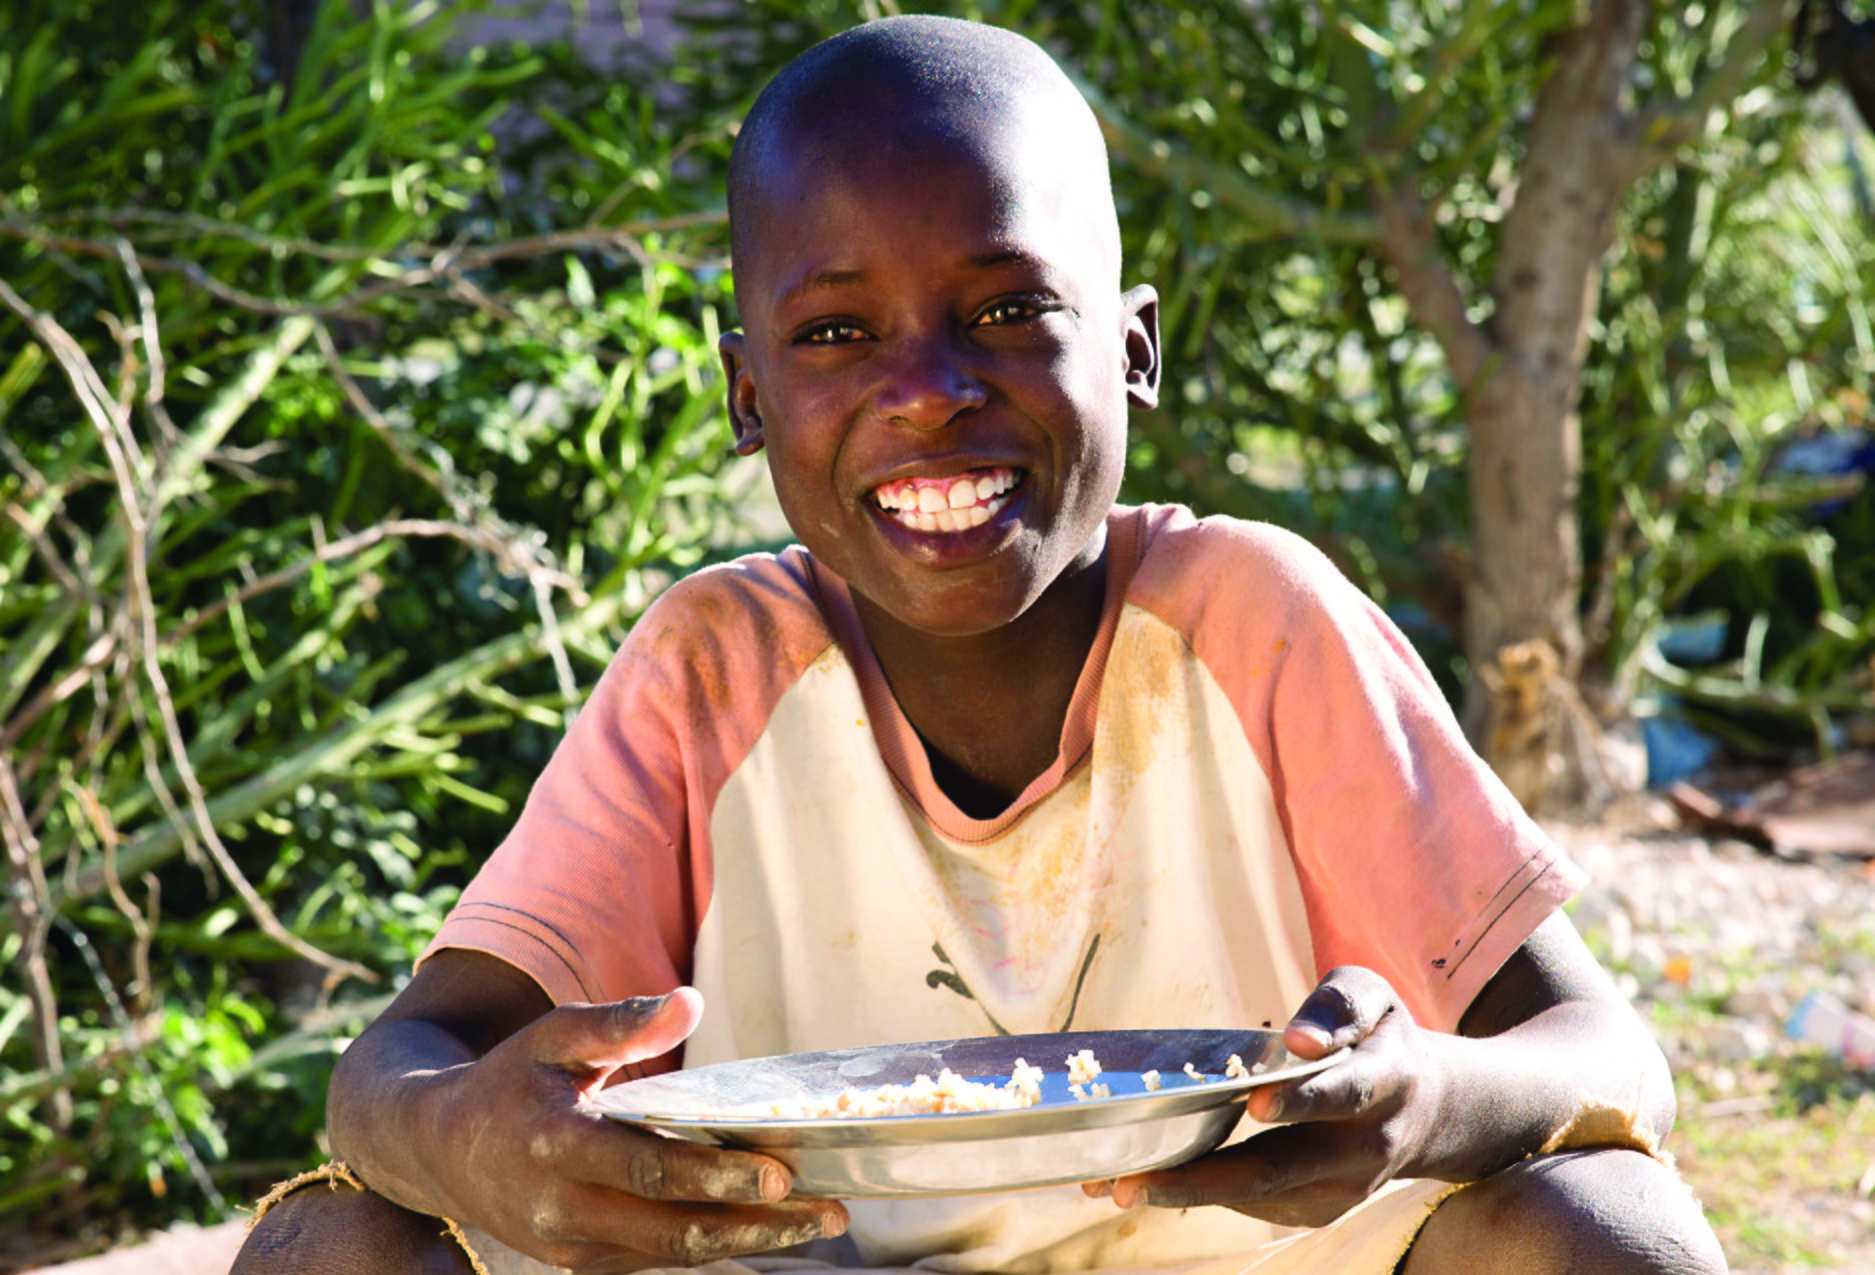 haitian-boy-with-food-provided-by-love-a-child